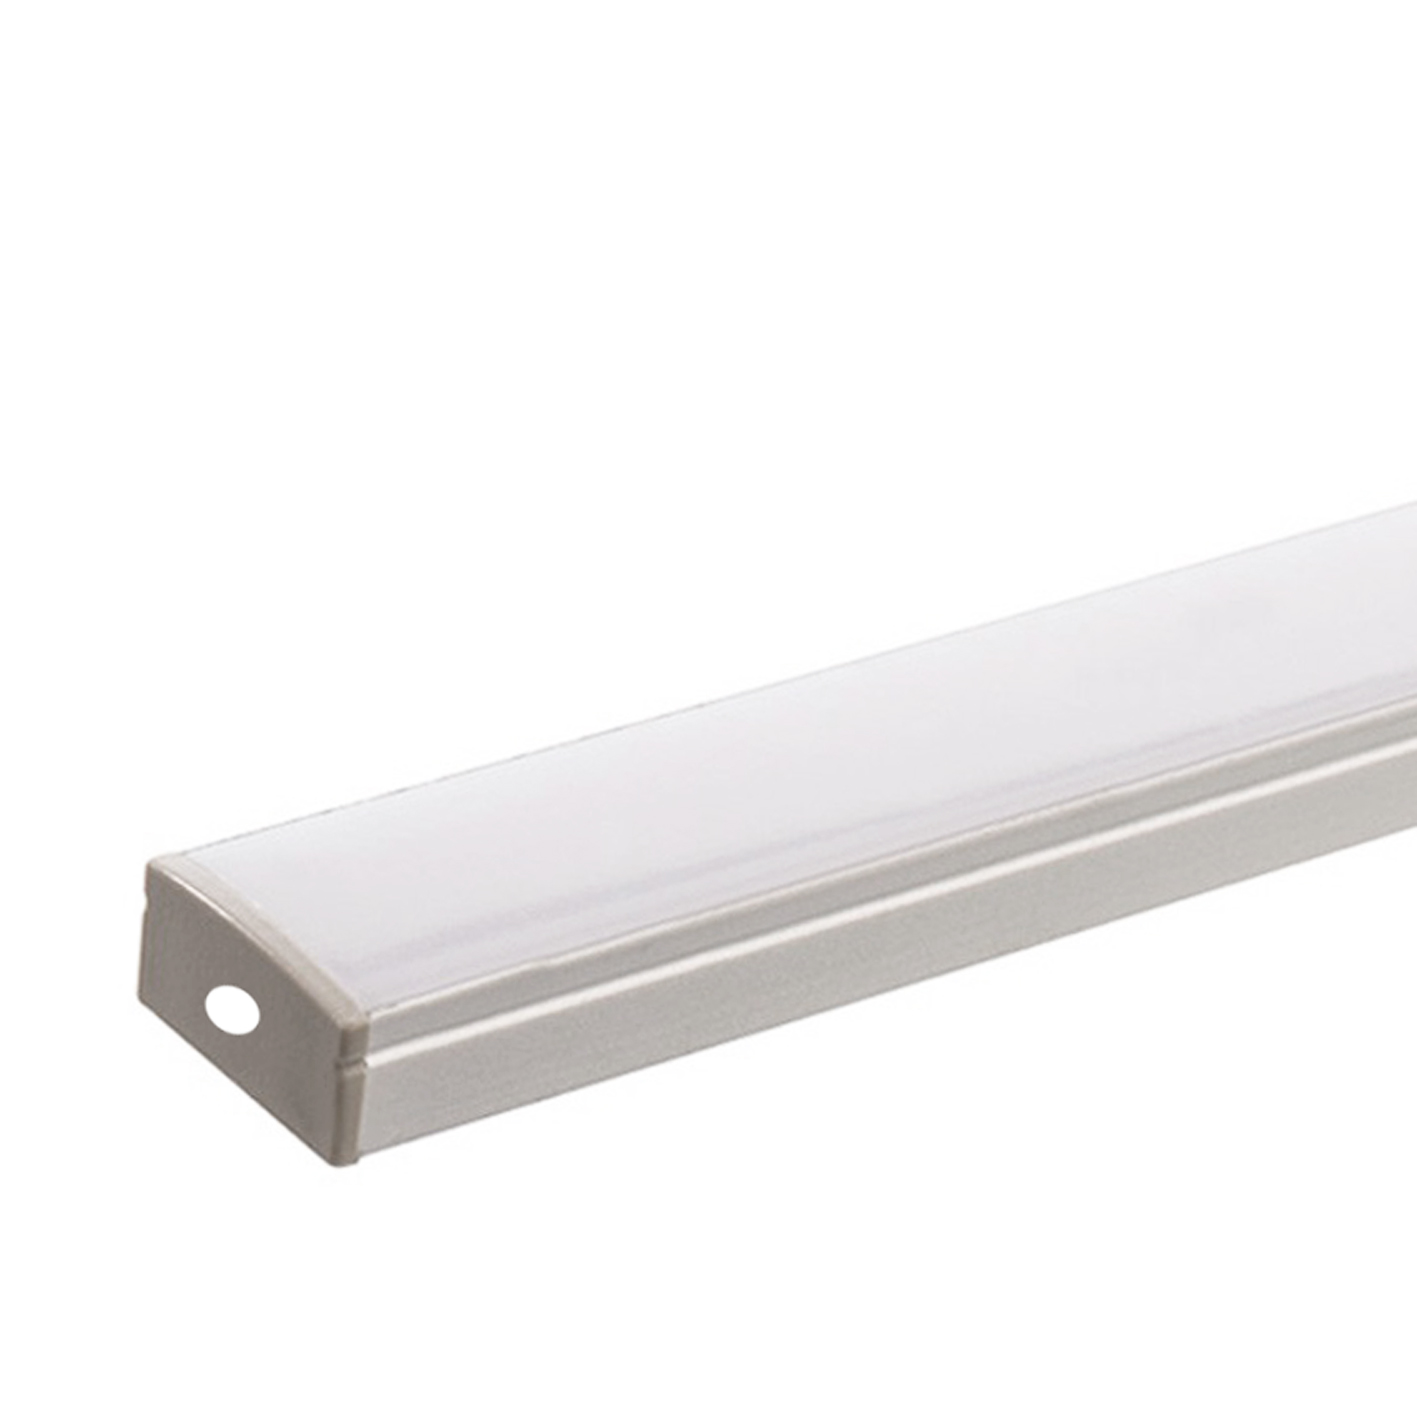 Profile for Strip led twin 2cm 1mt BAR Aluminum Matte Cover